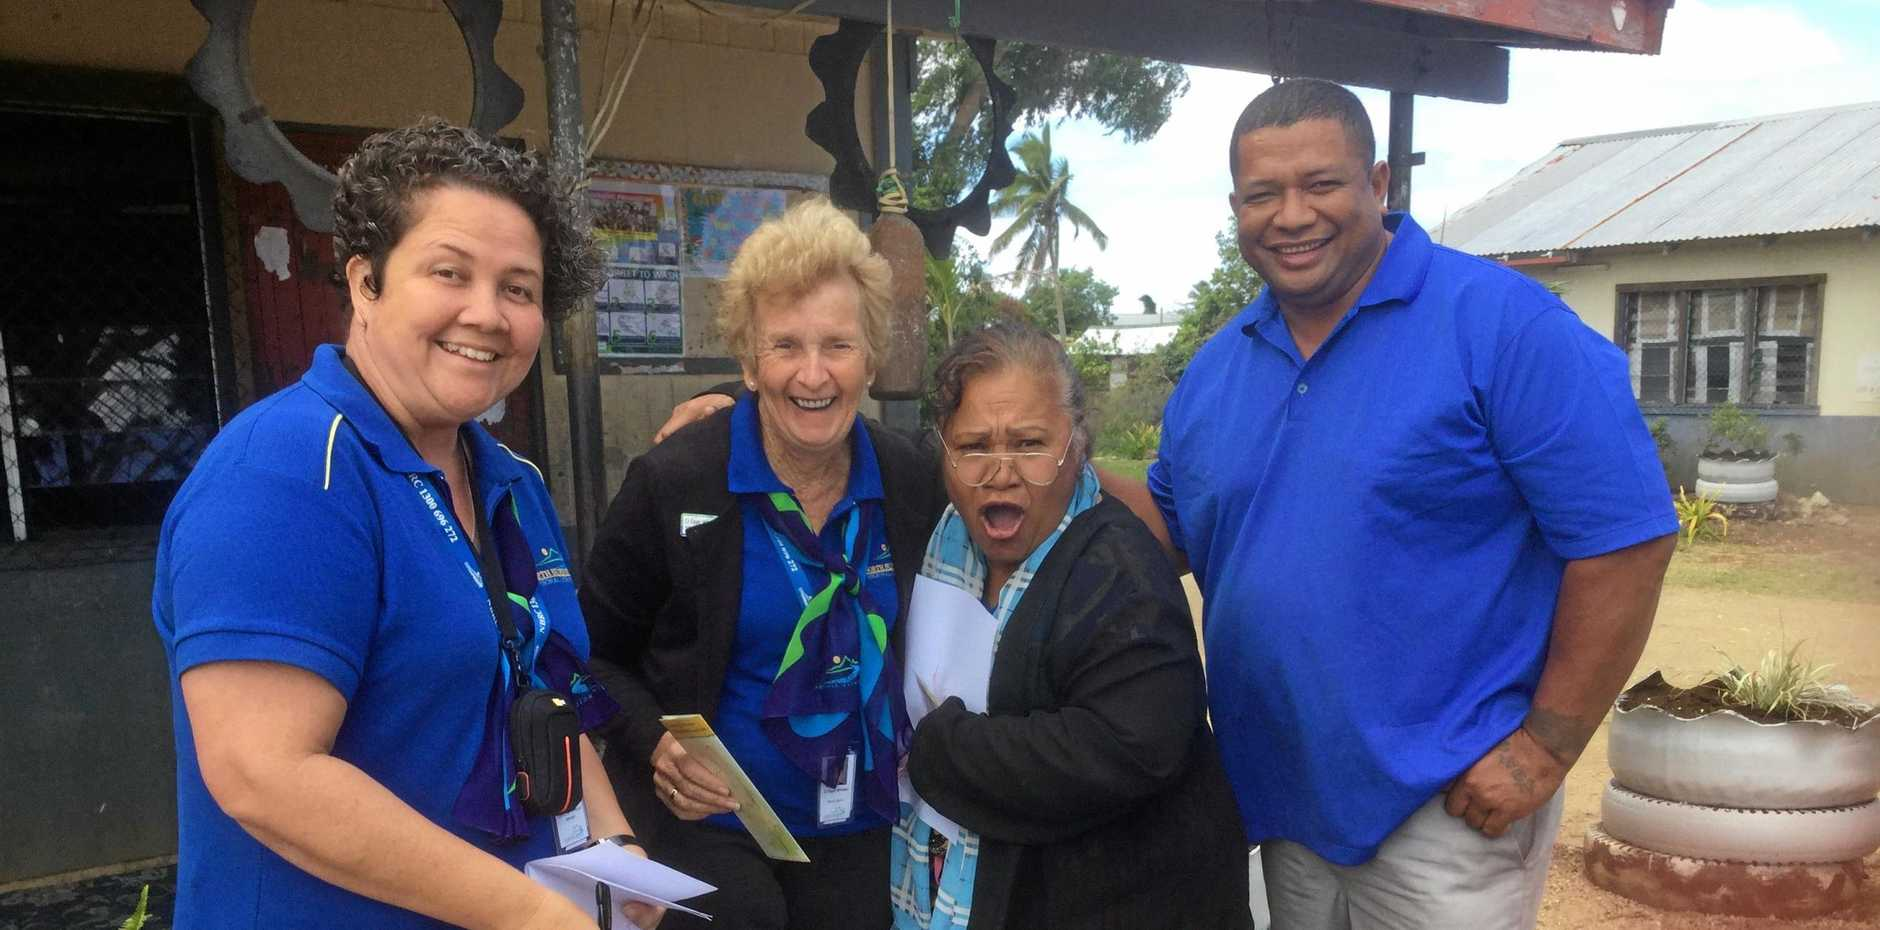 CARING COMMUNITIES: The Popua School Deputy Principal was thankful for the support Mundubbera provided after Tonga was hit by cyclone Gita.